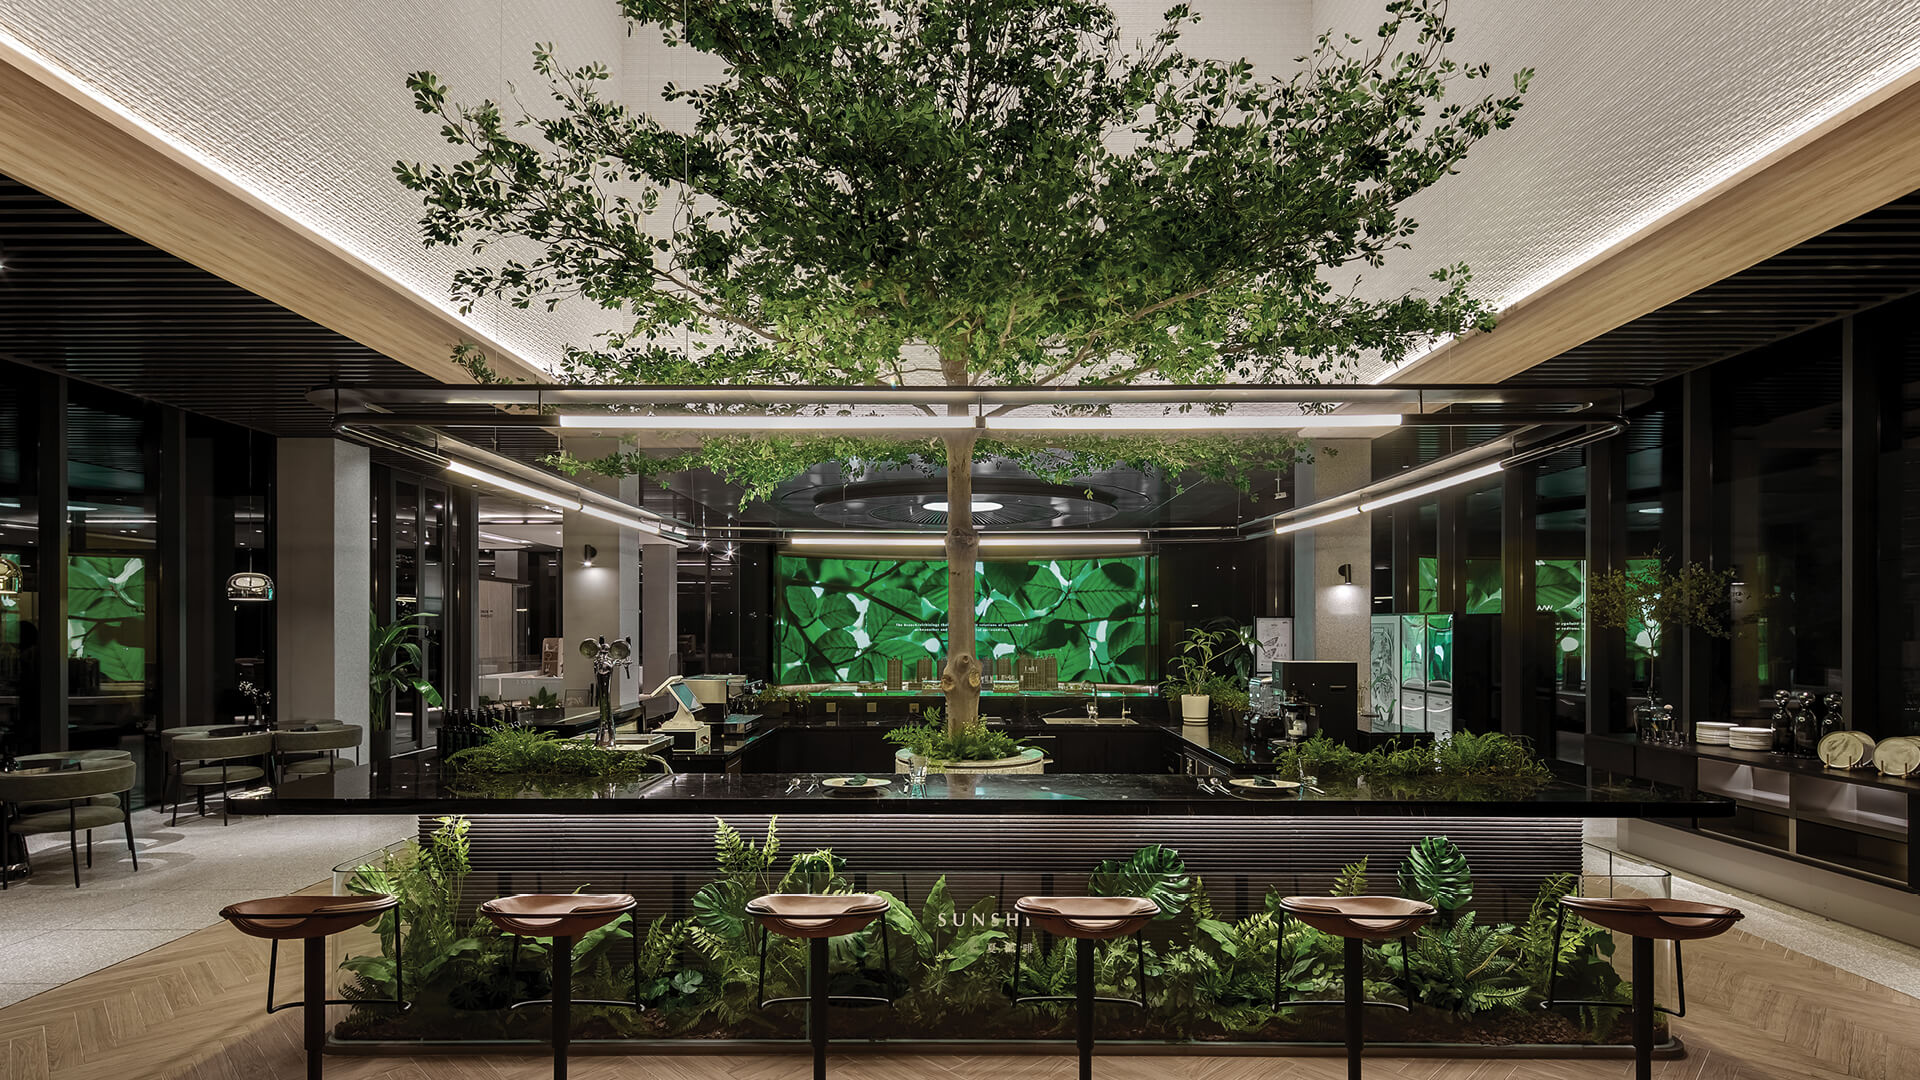 Karv One Design emulates a forest after a shower inside Afterain restaurant